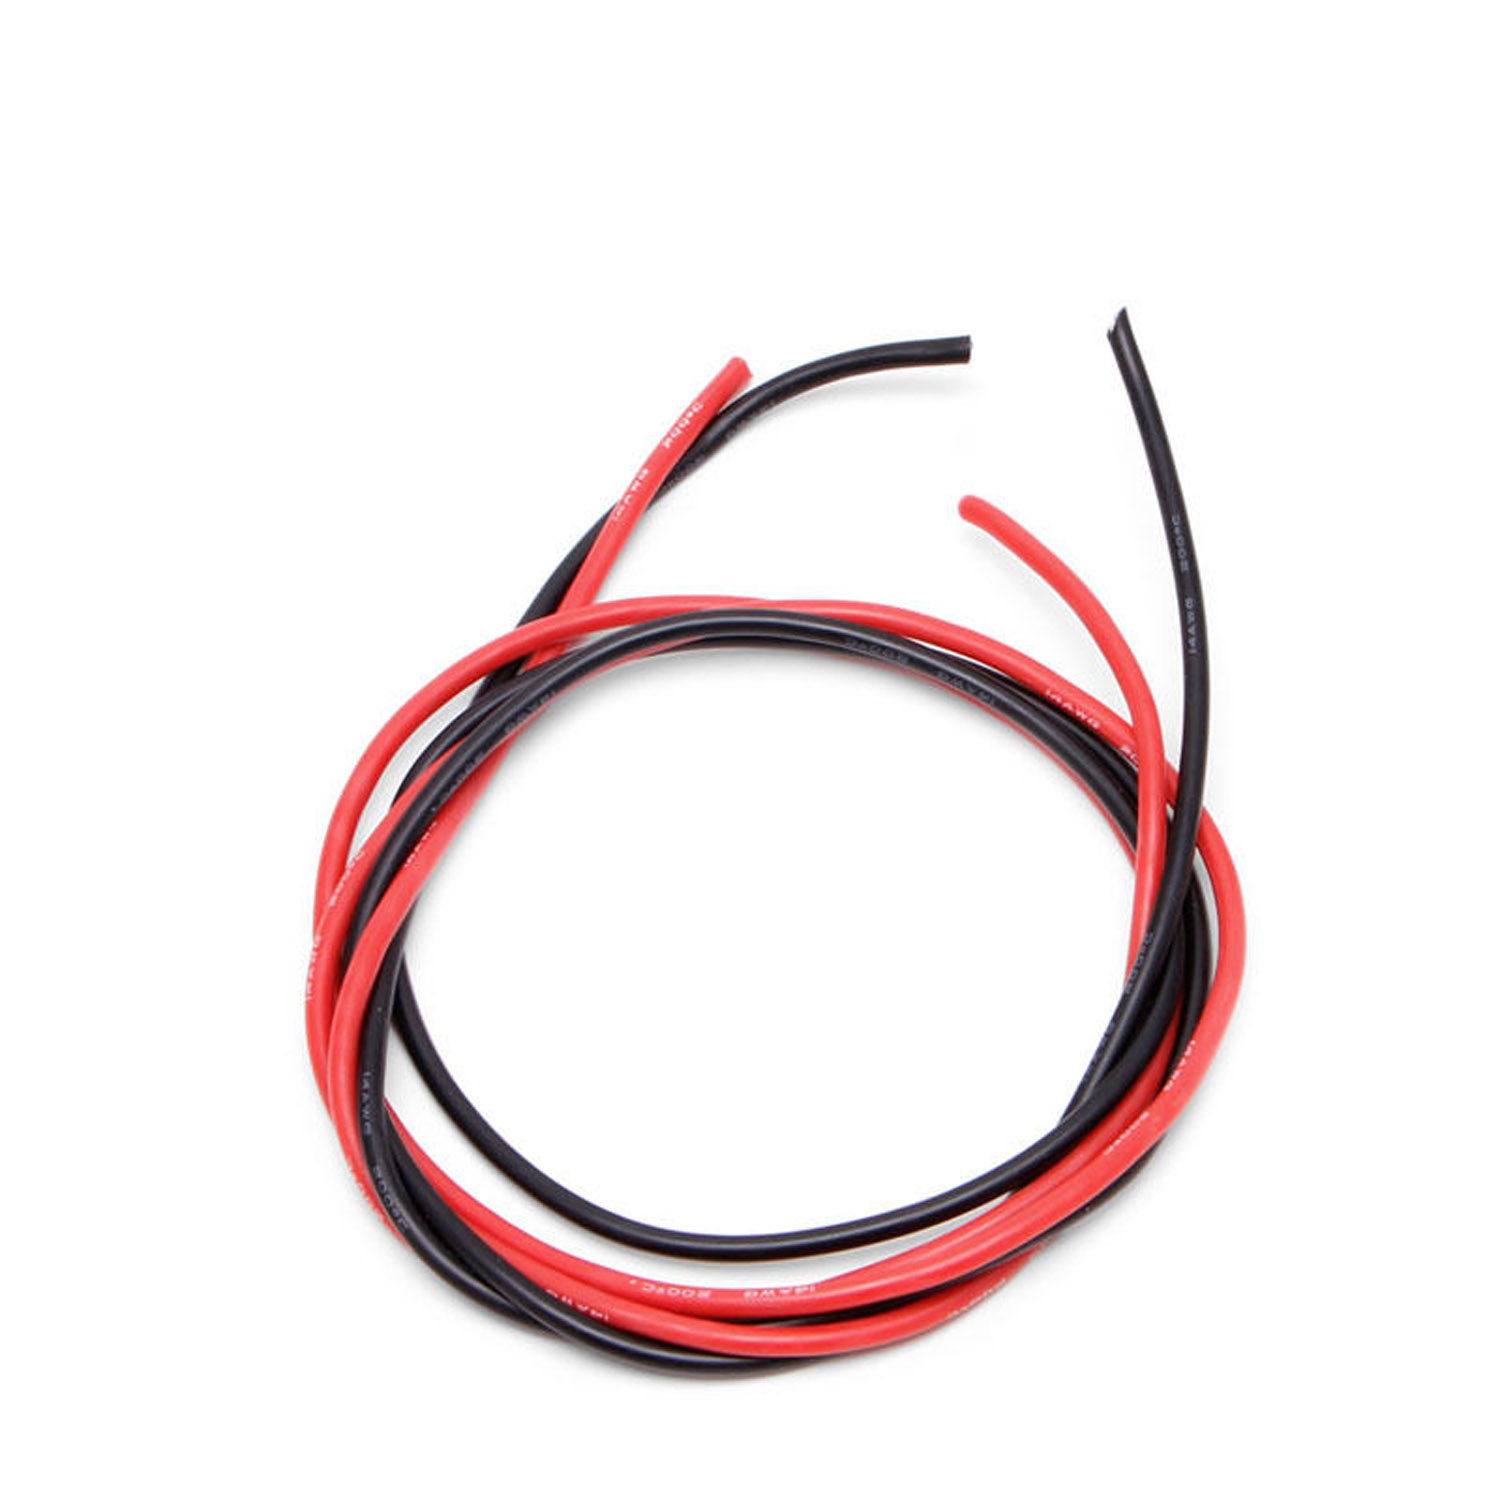 14 Awg Gauge Wire Flexible Silicone Stranded Copper Cables 2m For Wiring Devices Black Red Bsg